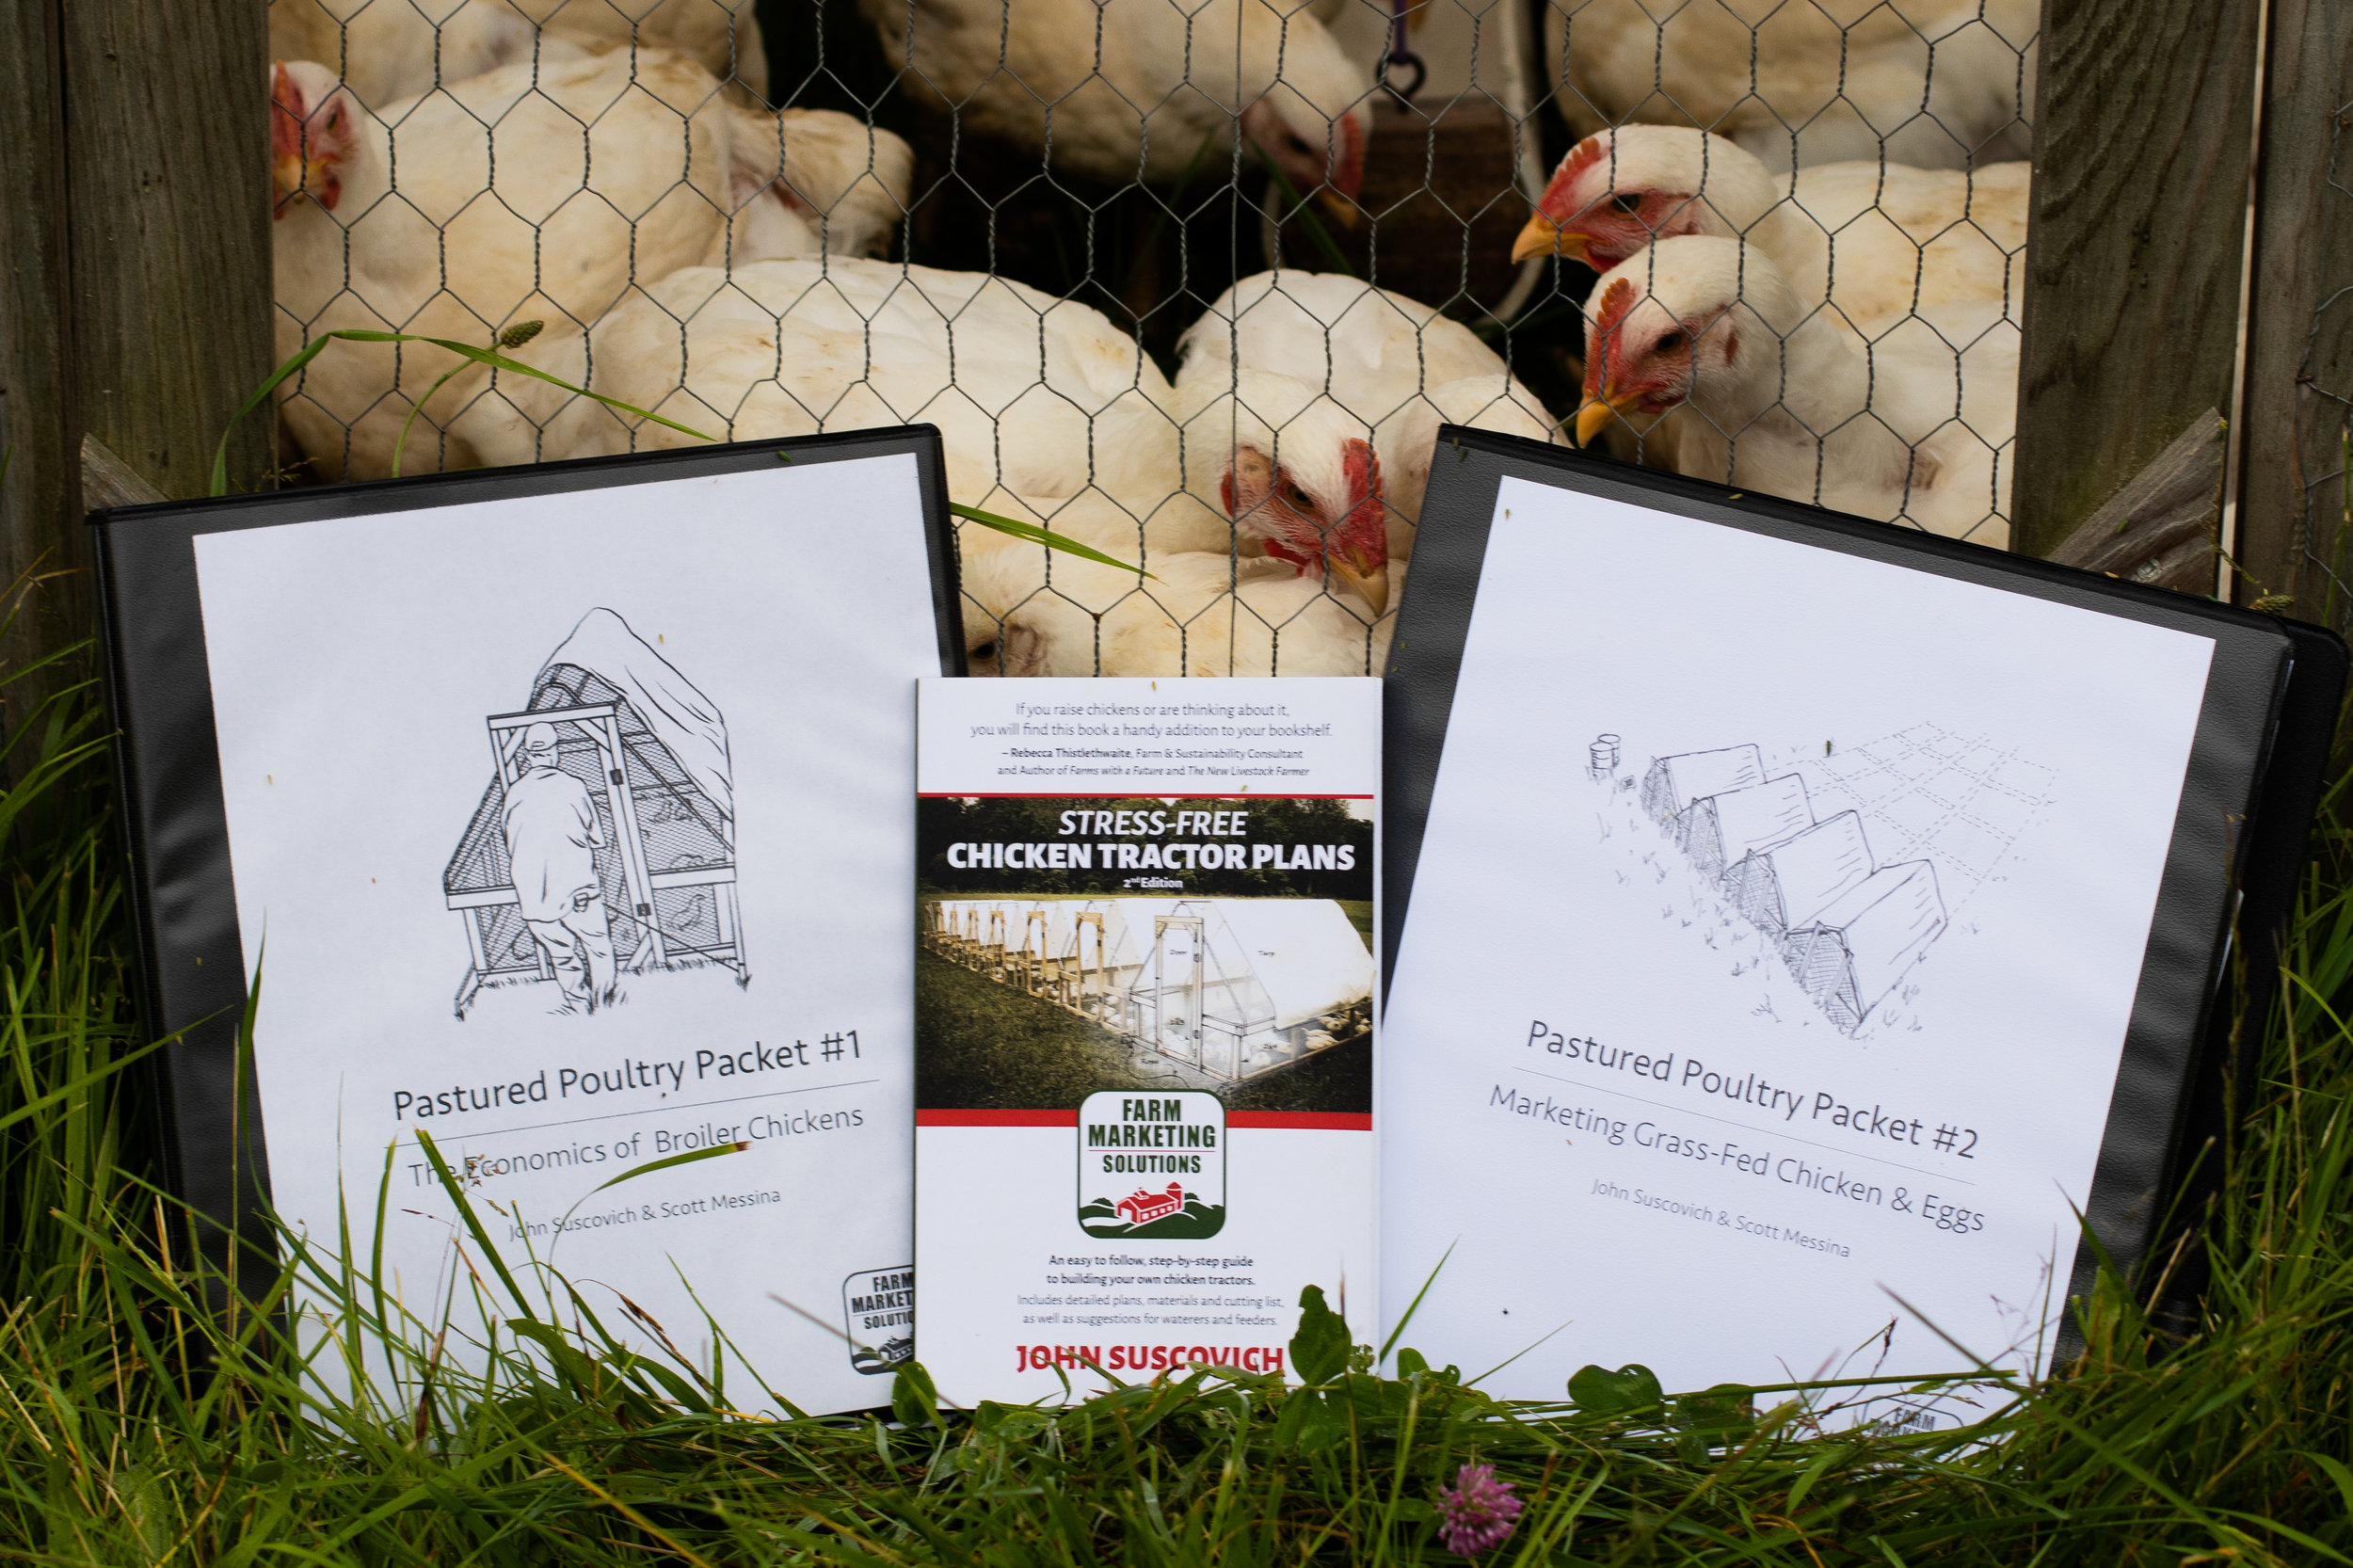 pastured poultry broiler chicken books